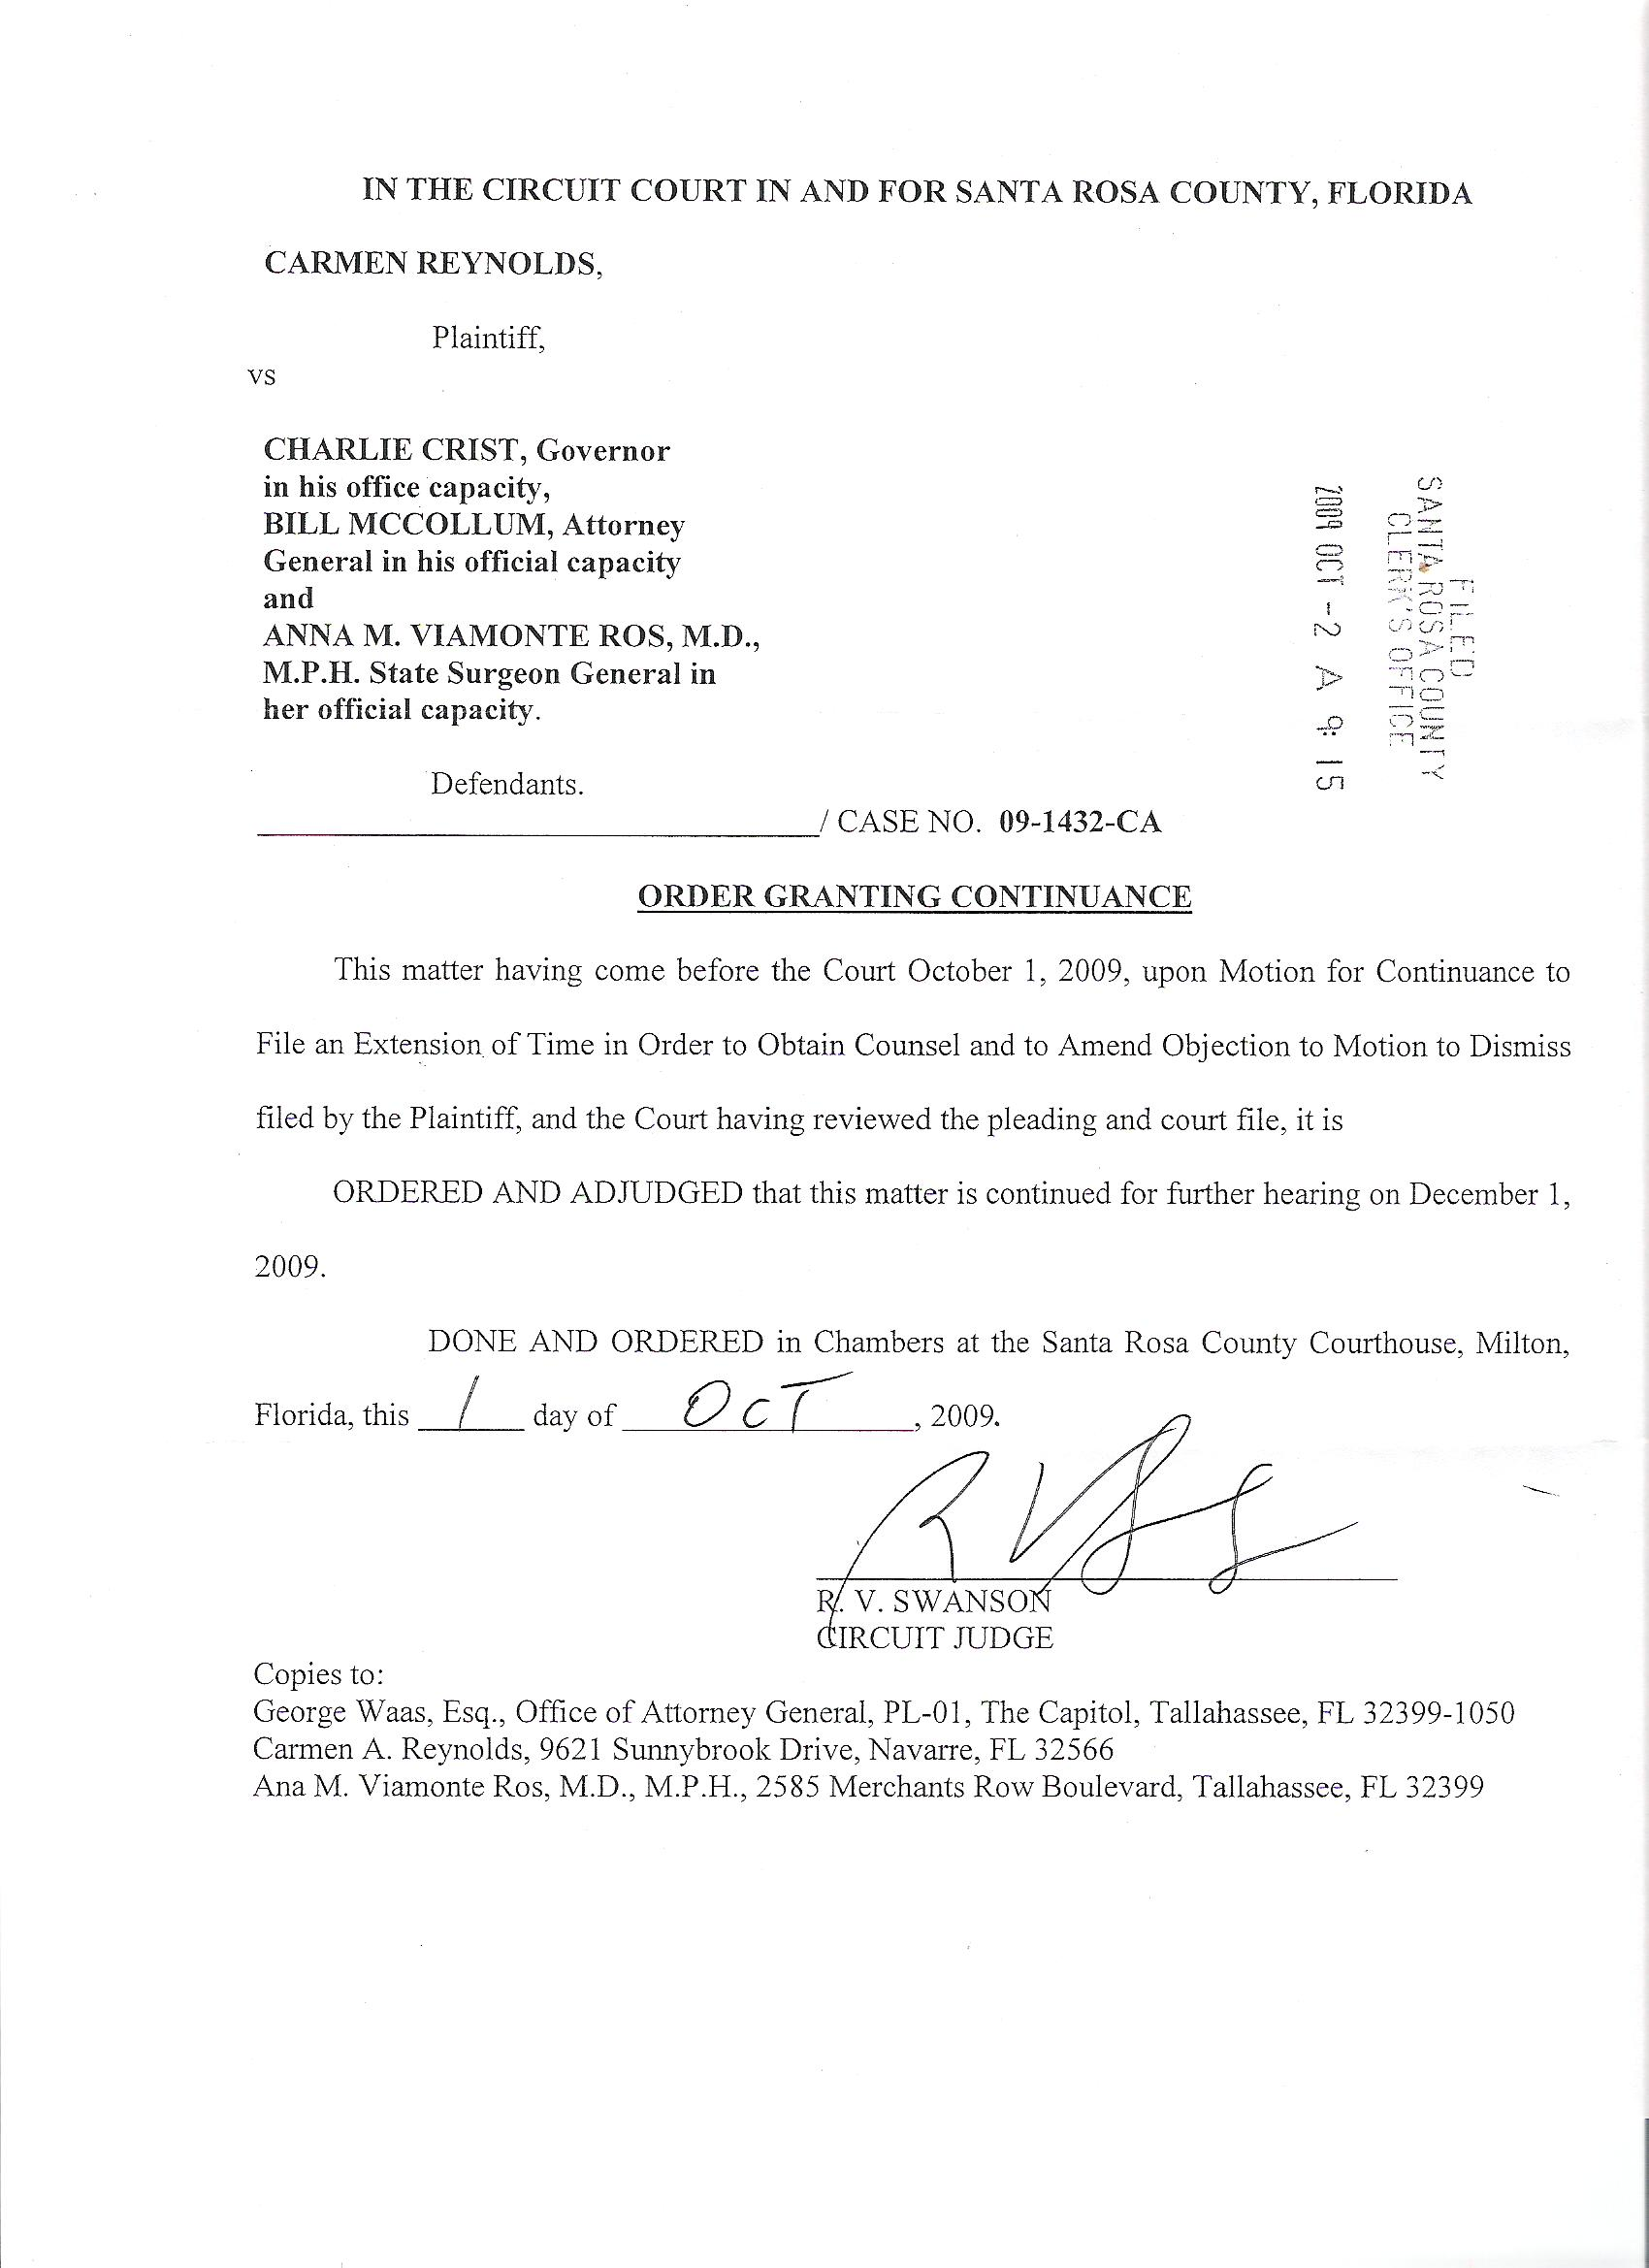 Sample Continuance Letter To Judge